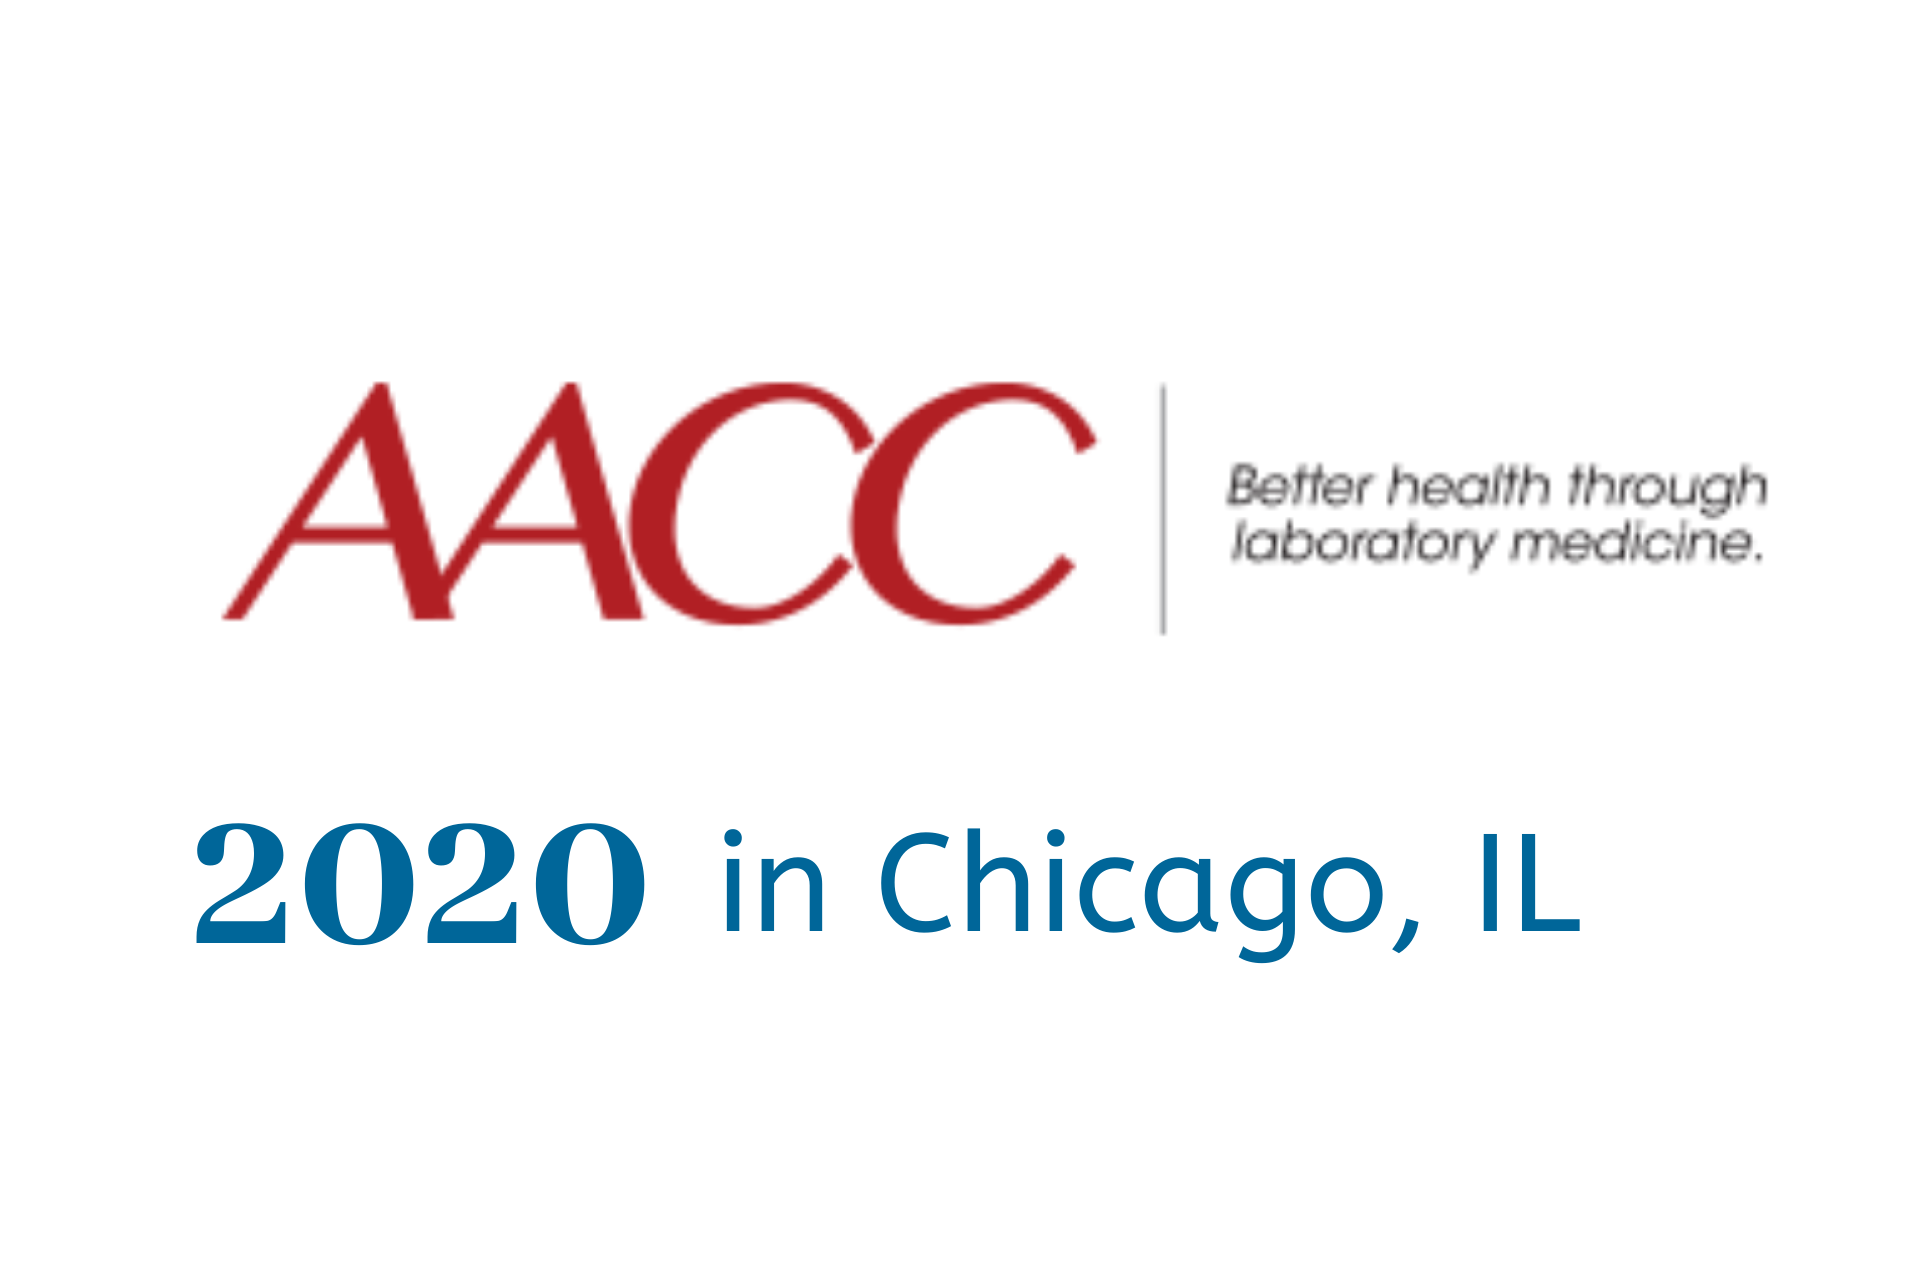 AACC 2020 AACC Annual Scientific Meeting & Clinical Lab Expo Logo for 2020 conference in Chicago, IL with Lifepoint Informatics